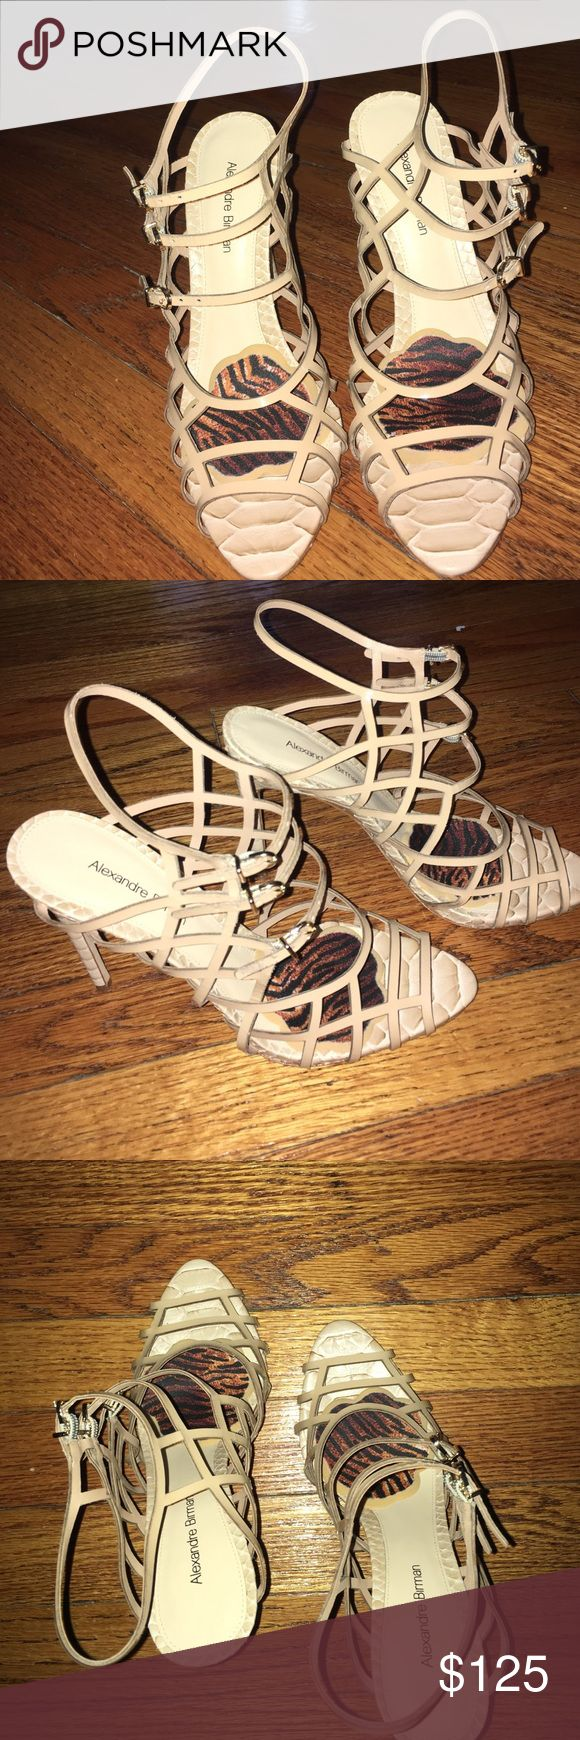 FLASH SALE! Alexandre Birman nude caged heels! 💋 Beautiful and gently loved, Alexandre Birman nude caged heels! 😍 Three straps to secure your effortless and fierce strut. Because let's face it, these just say beautiful attitude! OFFERS WELCOMED! Let's make a deal! NO RETURNS, and please ask questions before purchase! Alexandre Birman  Shoes Heels